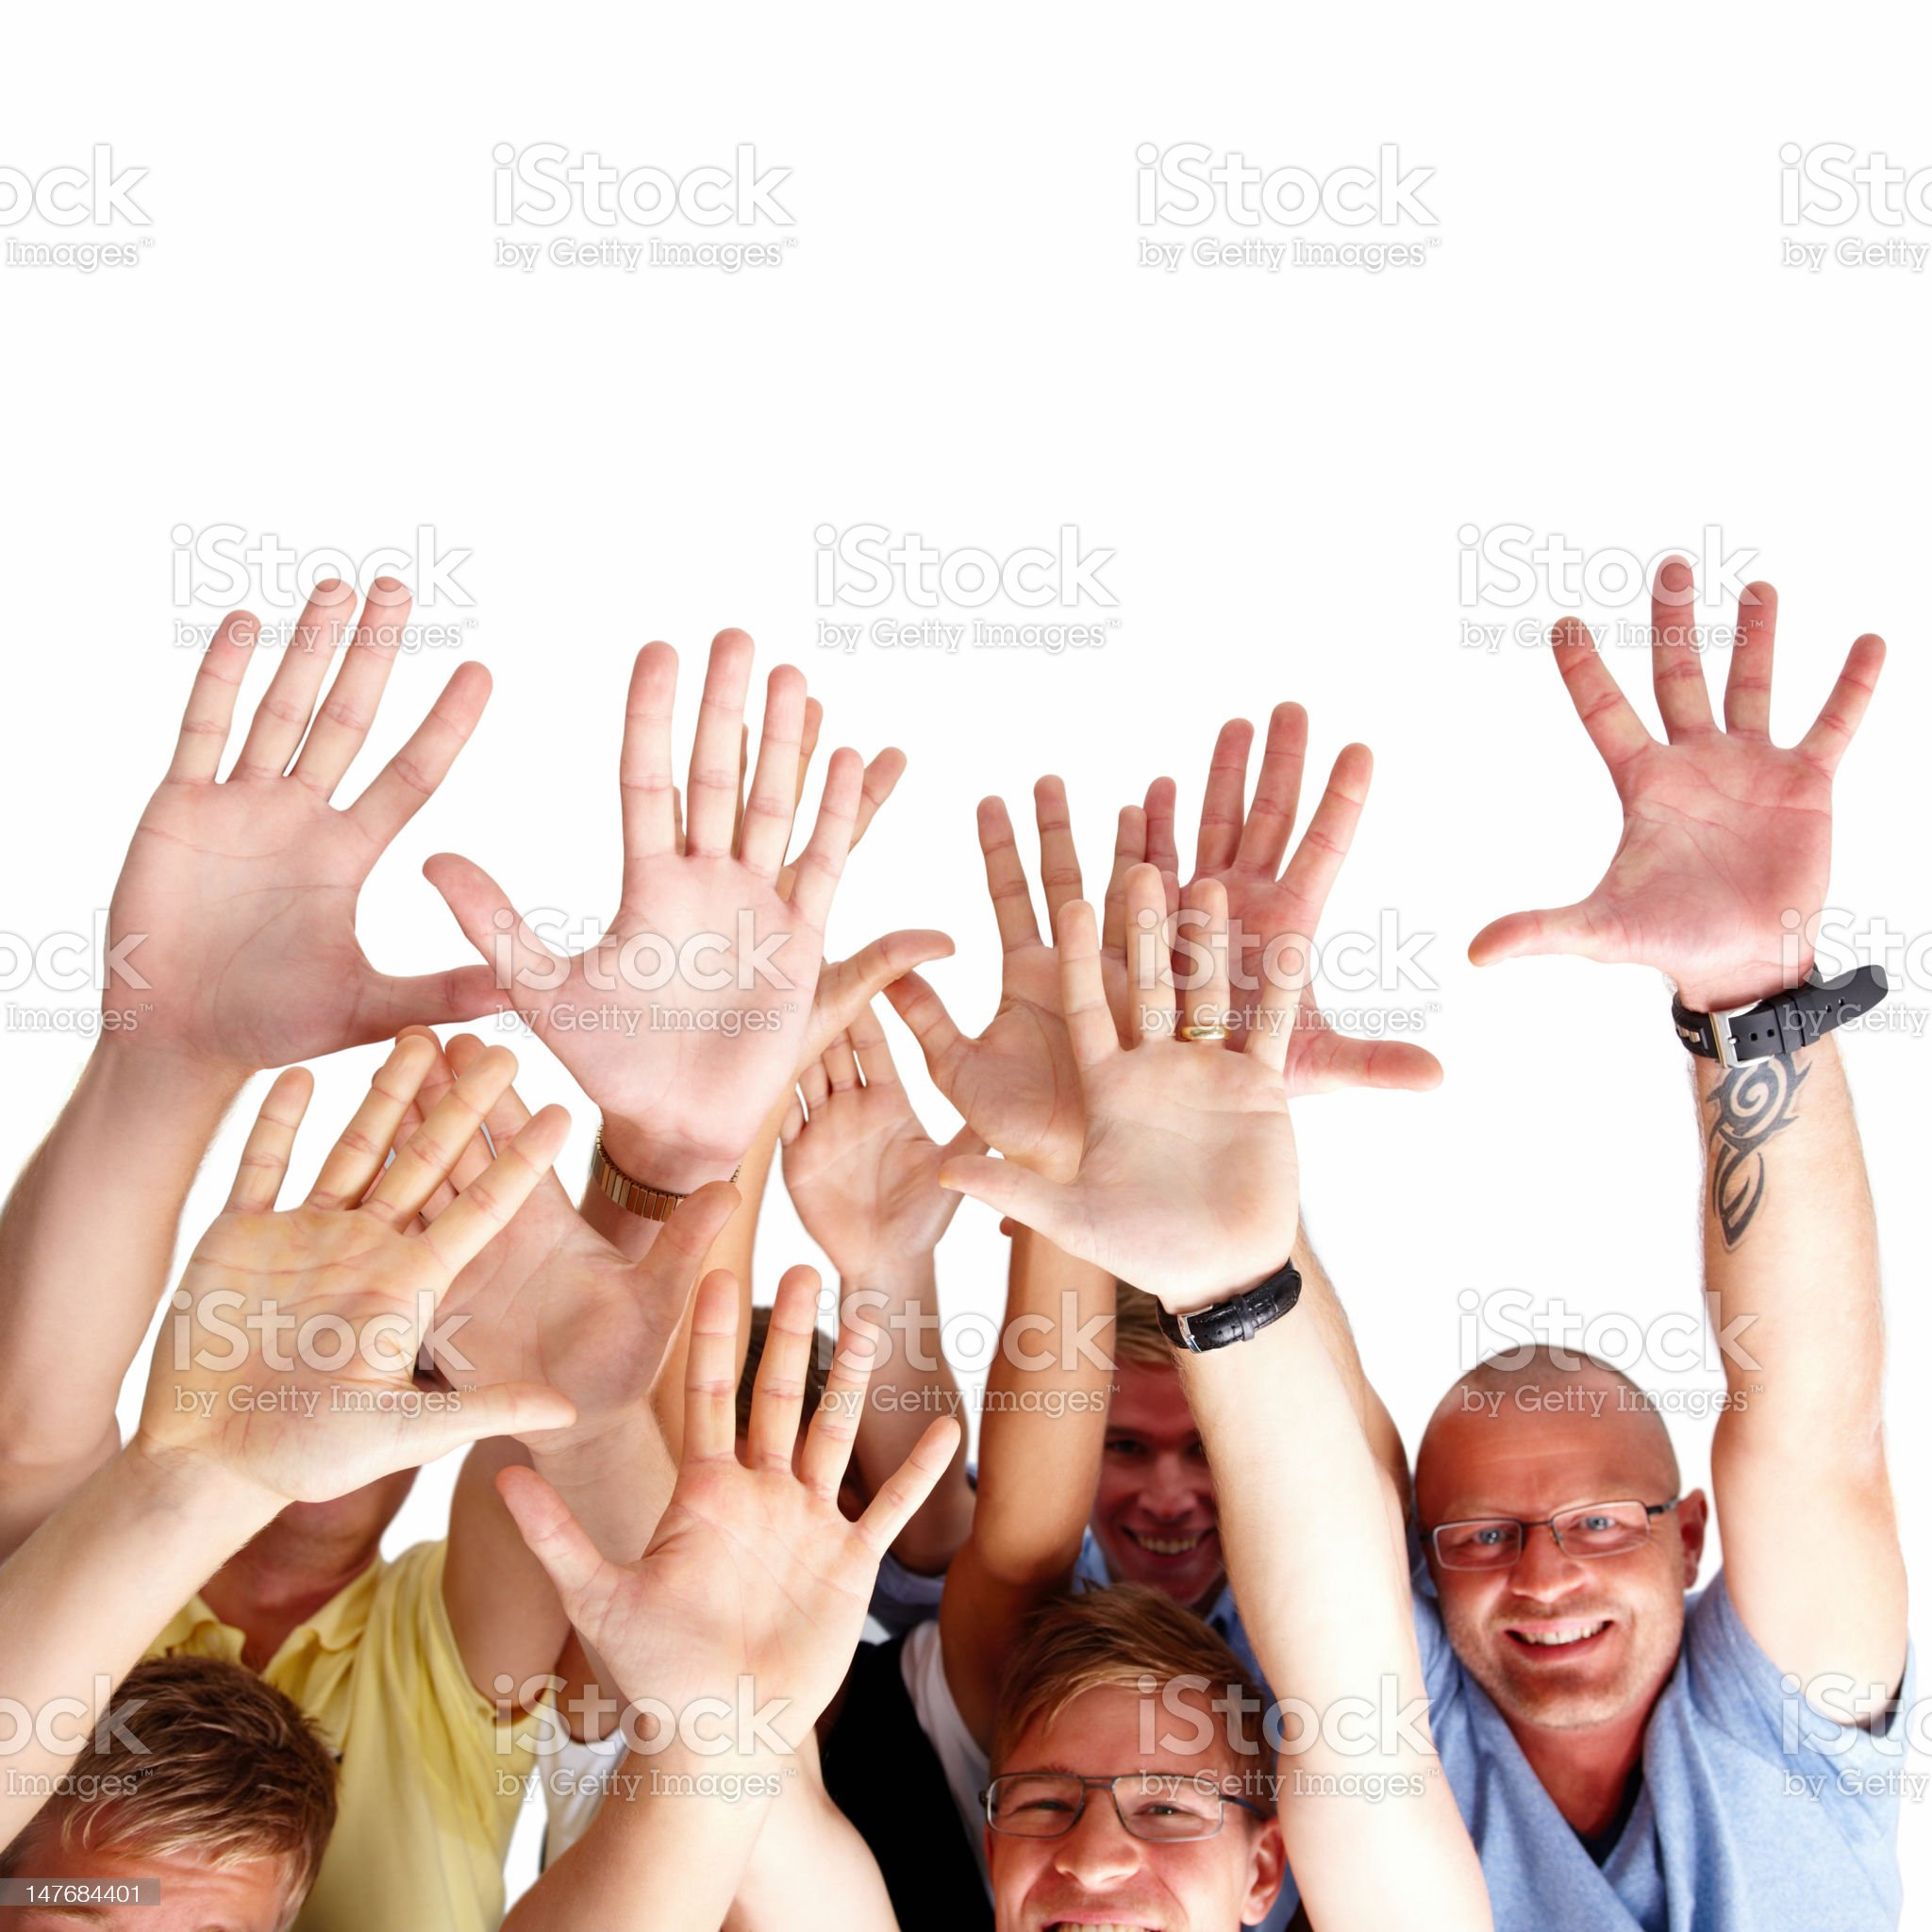 Group of people with arms raised royalty-free stock photo